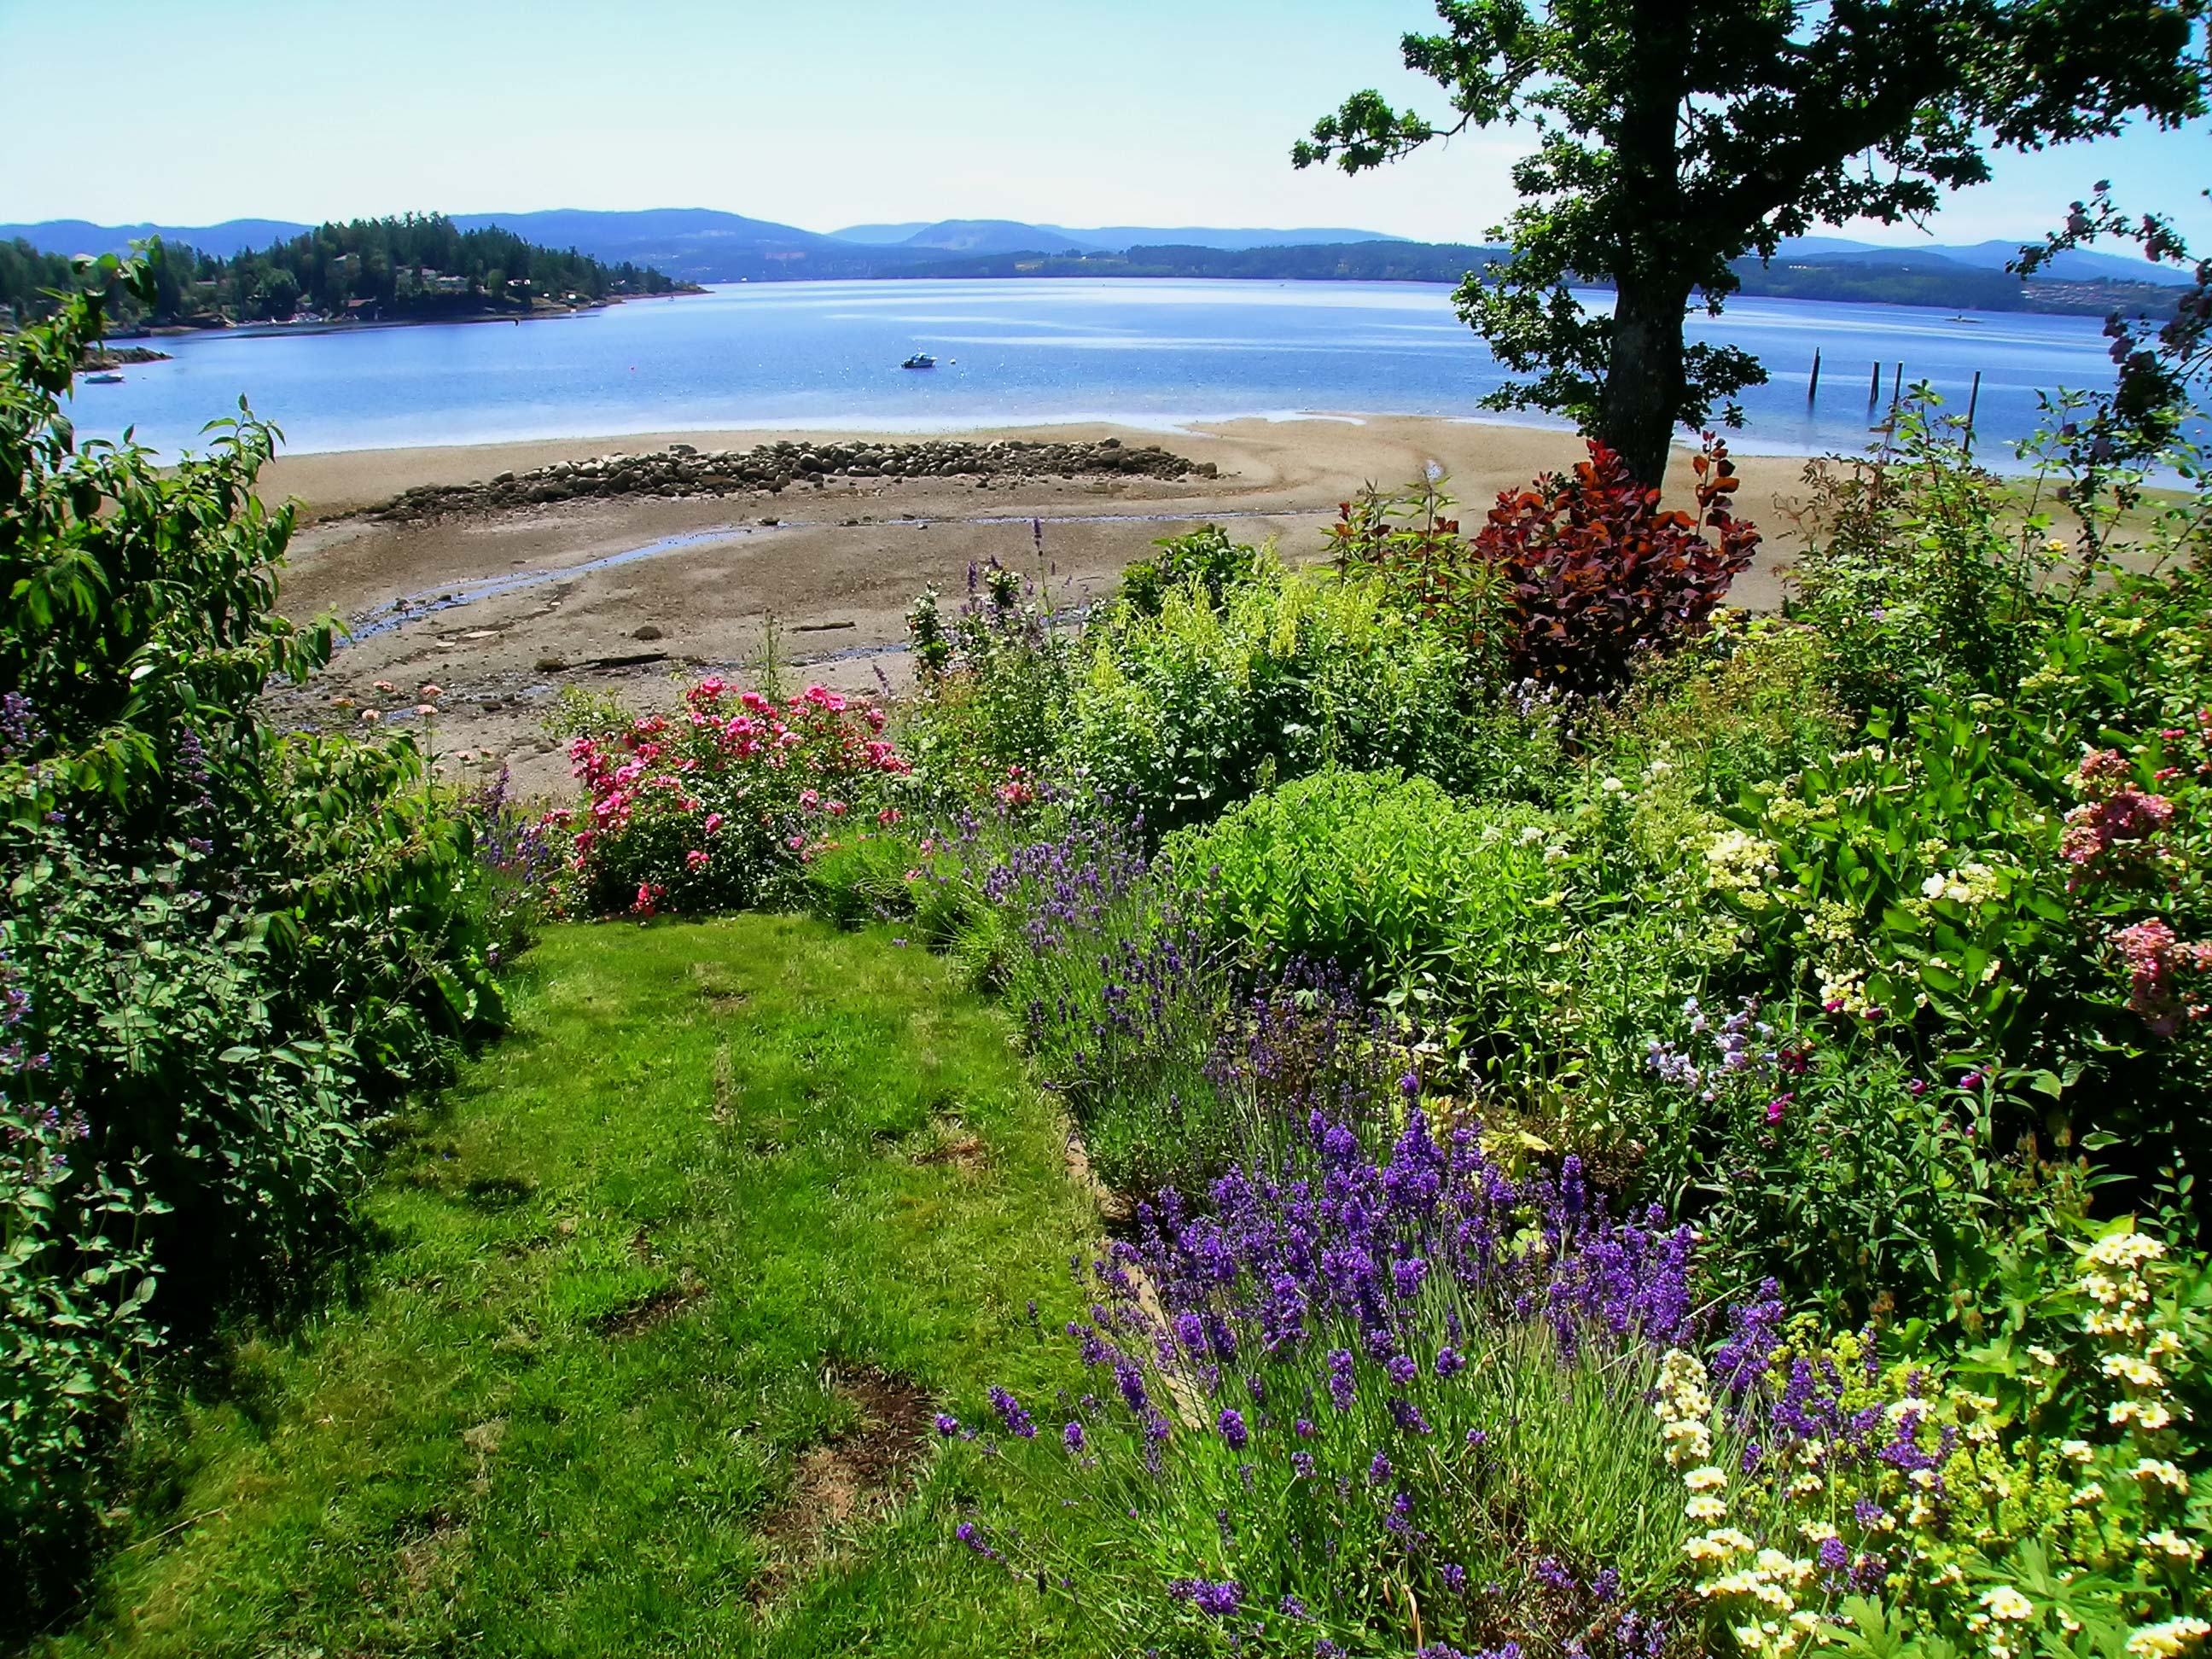 Gulf Islands BC – The Fantasy Islands